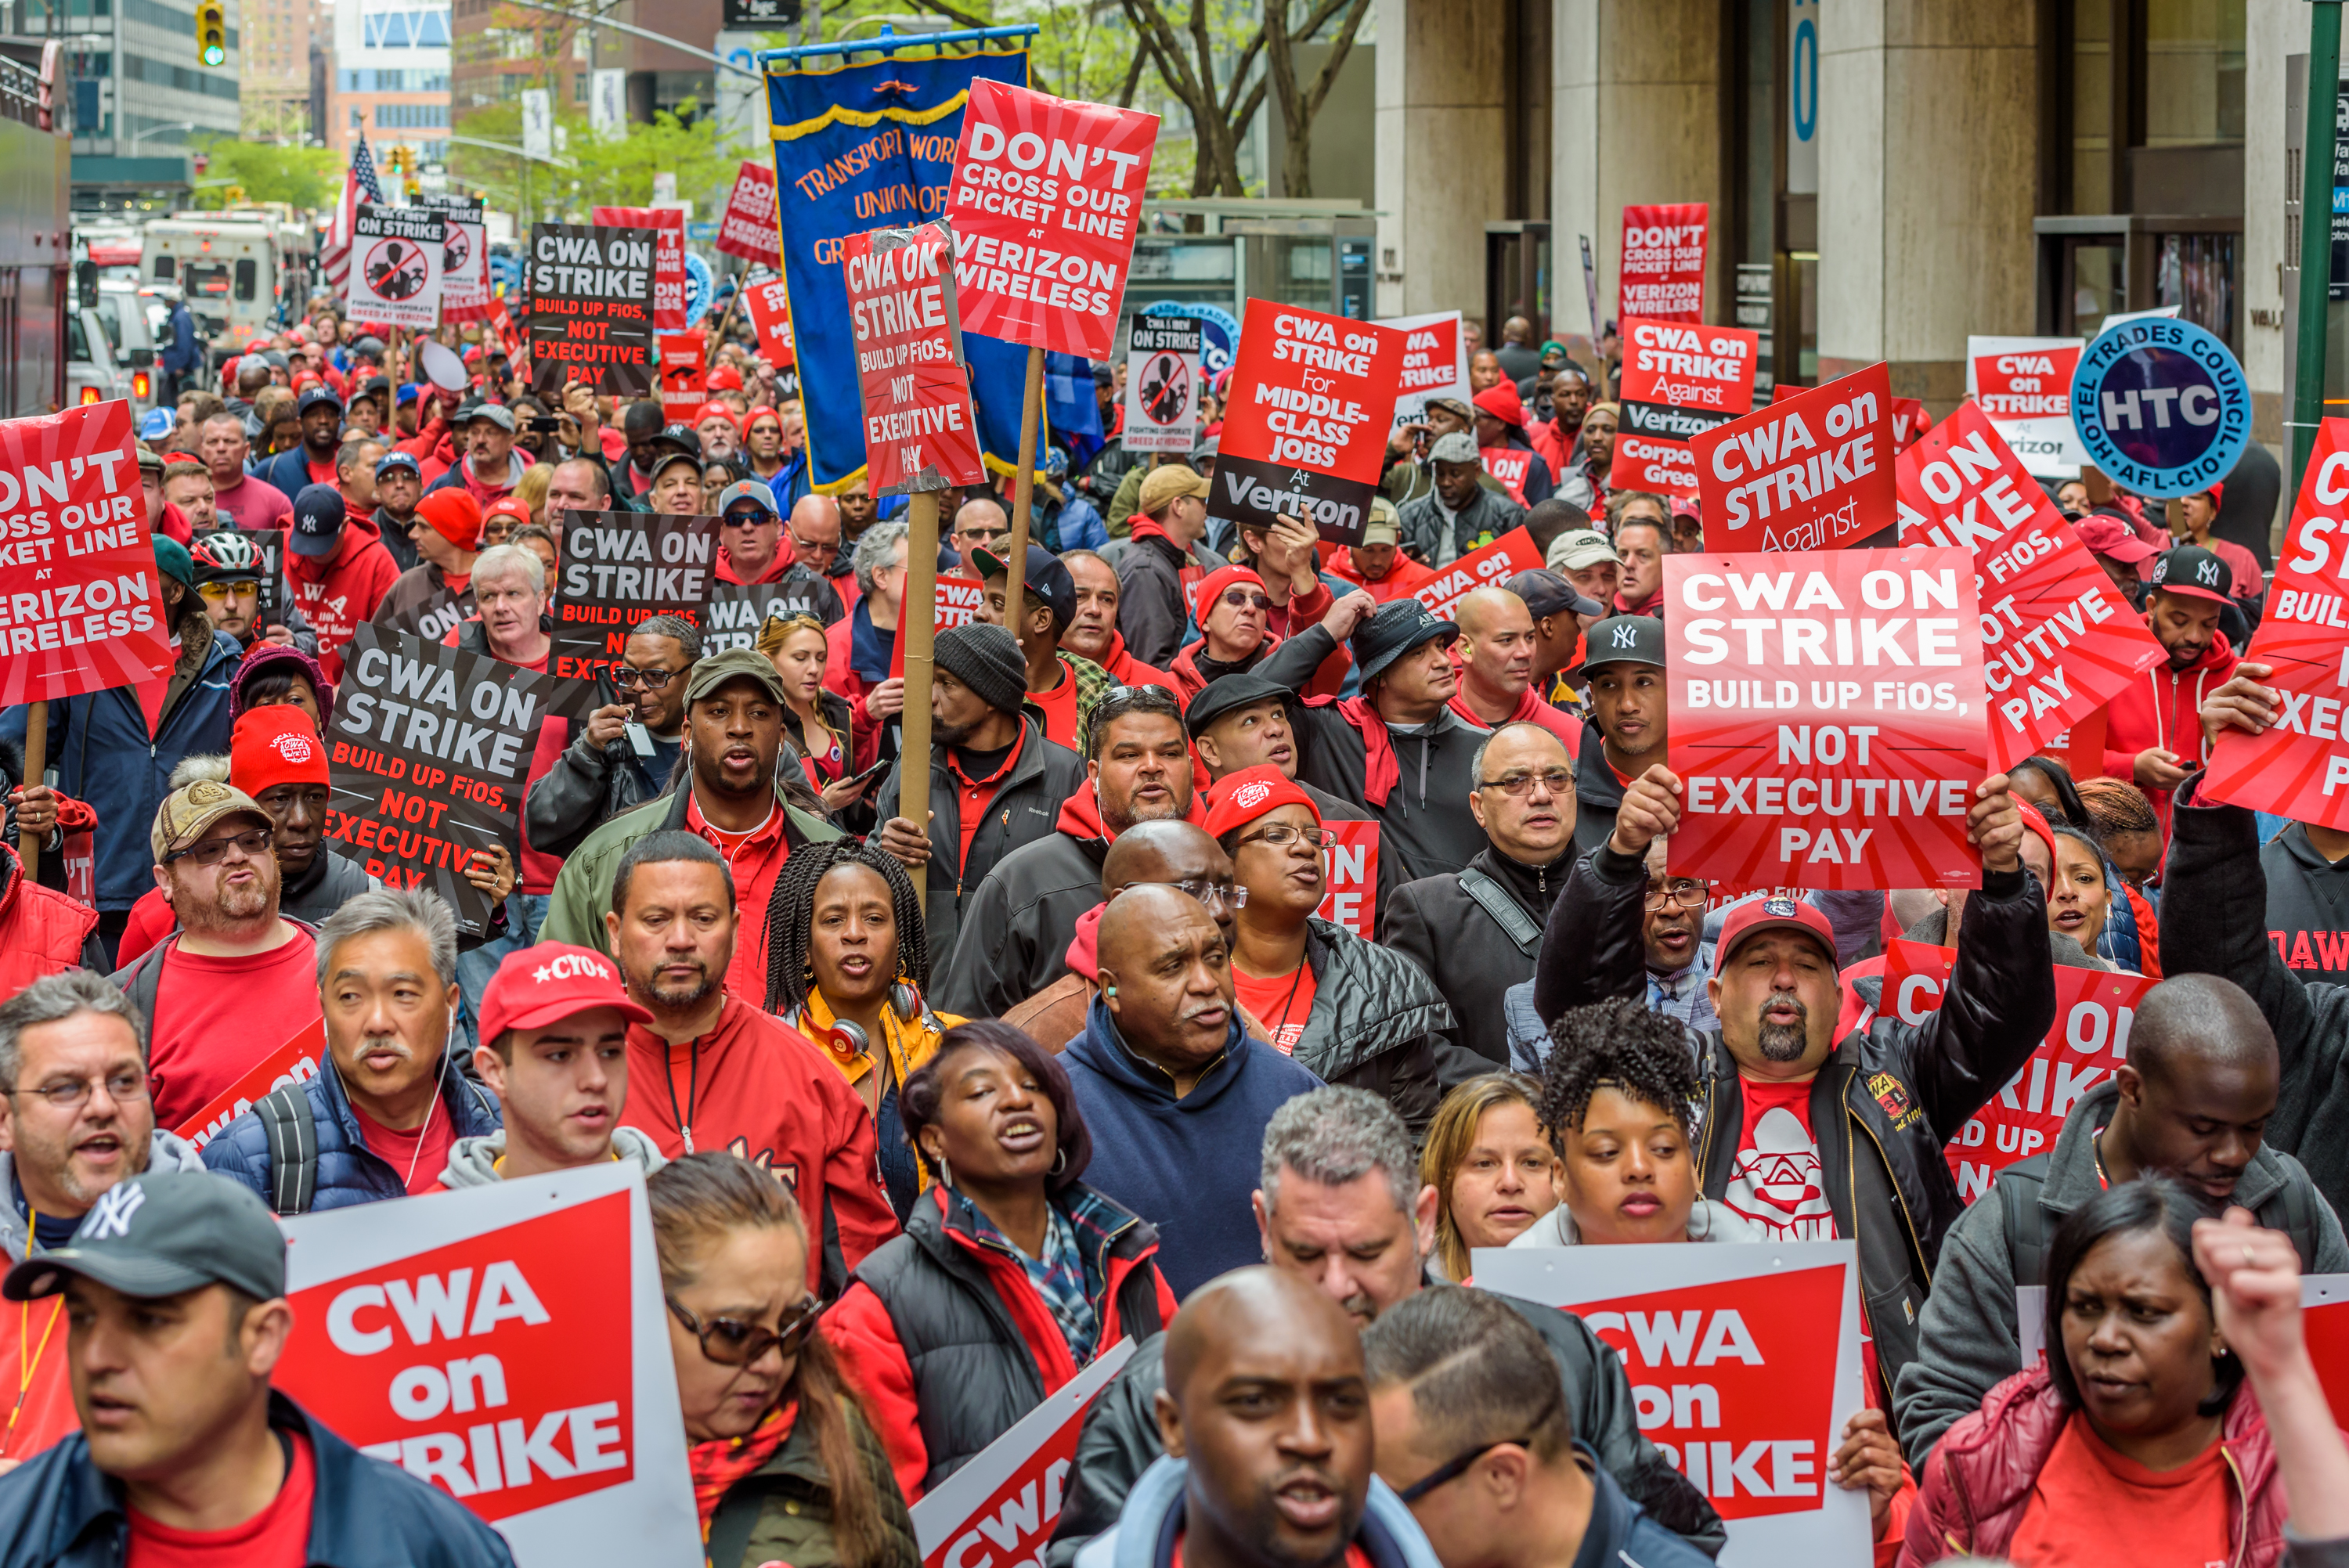 USA : NYC Verizon workers on strike for fair contract